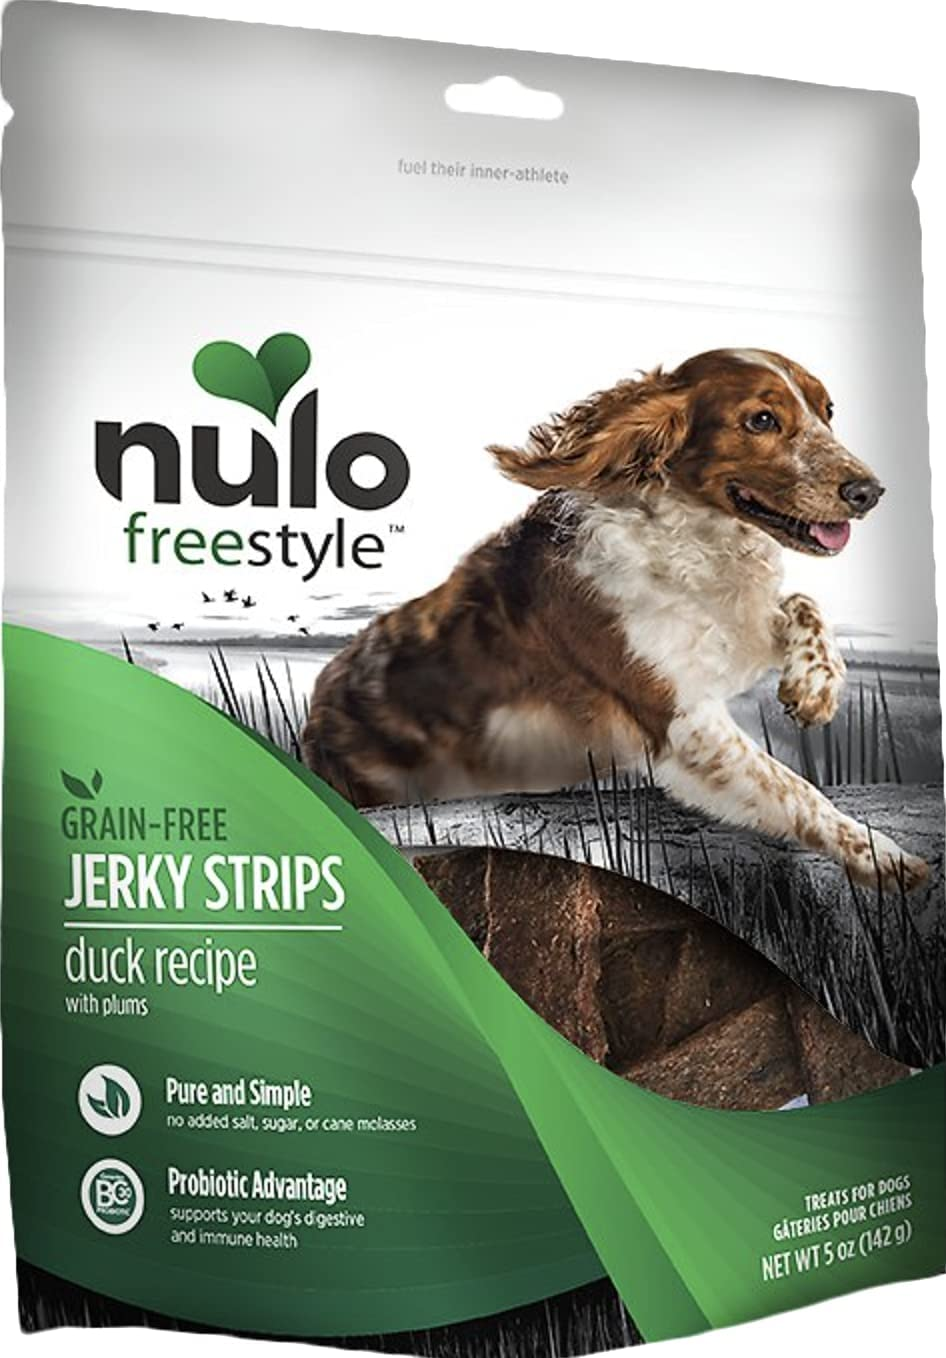 Denver Mall Nulo Freestyle 2 Pack Discount mail order of Grain-Free Treats Dog Strips 5 O Jerky